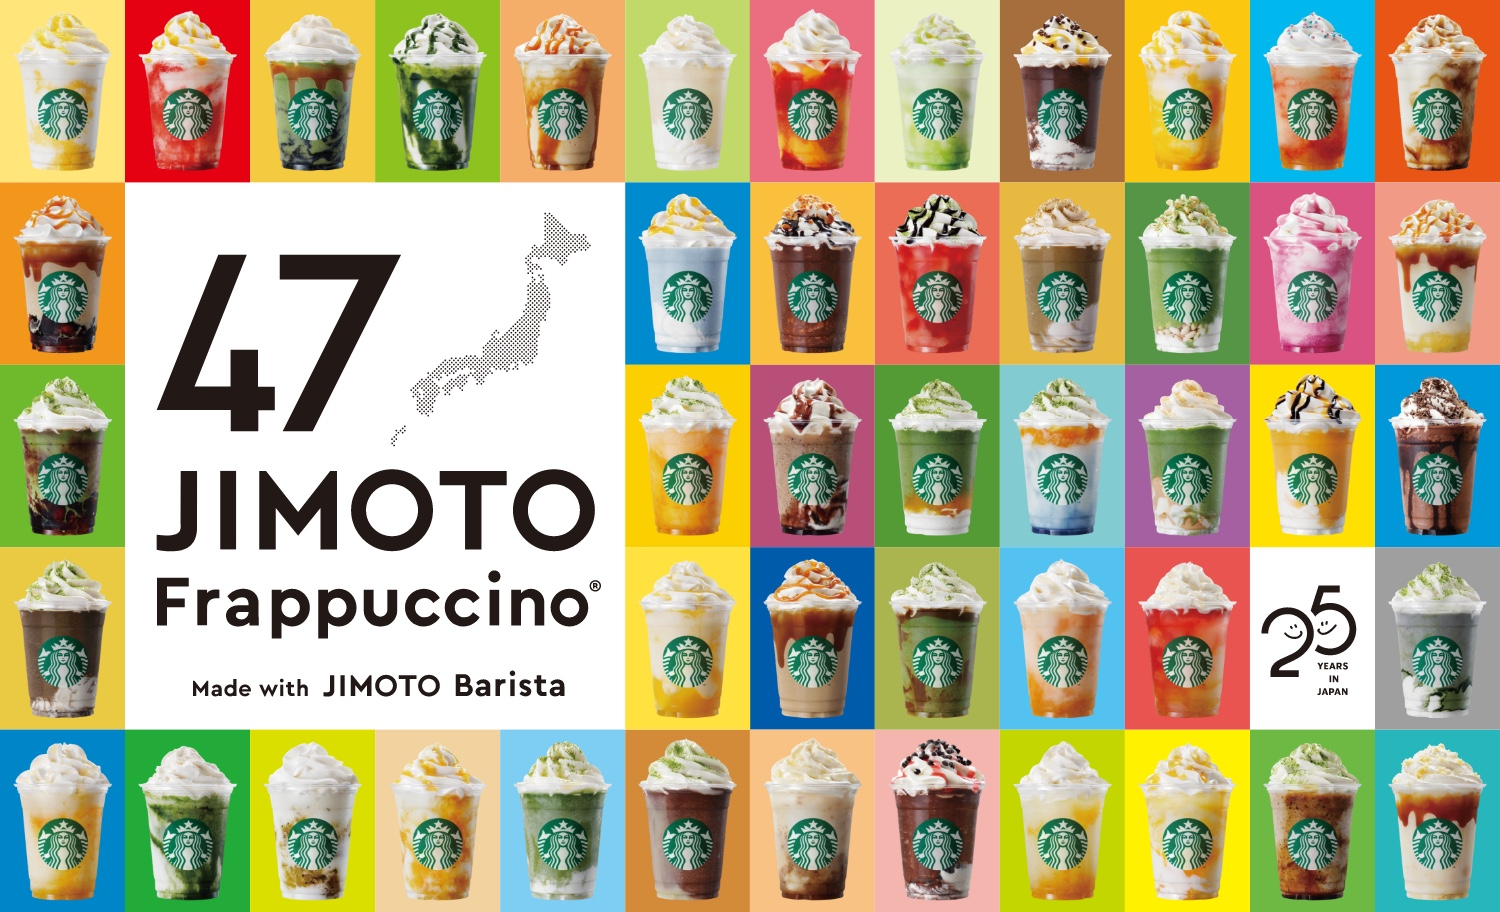 Starbucks Japan to Release 47 JIMOTO Frappuccino in 2021Summer